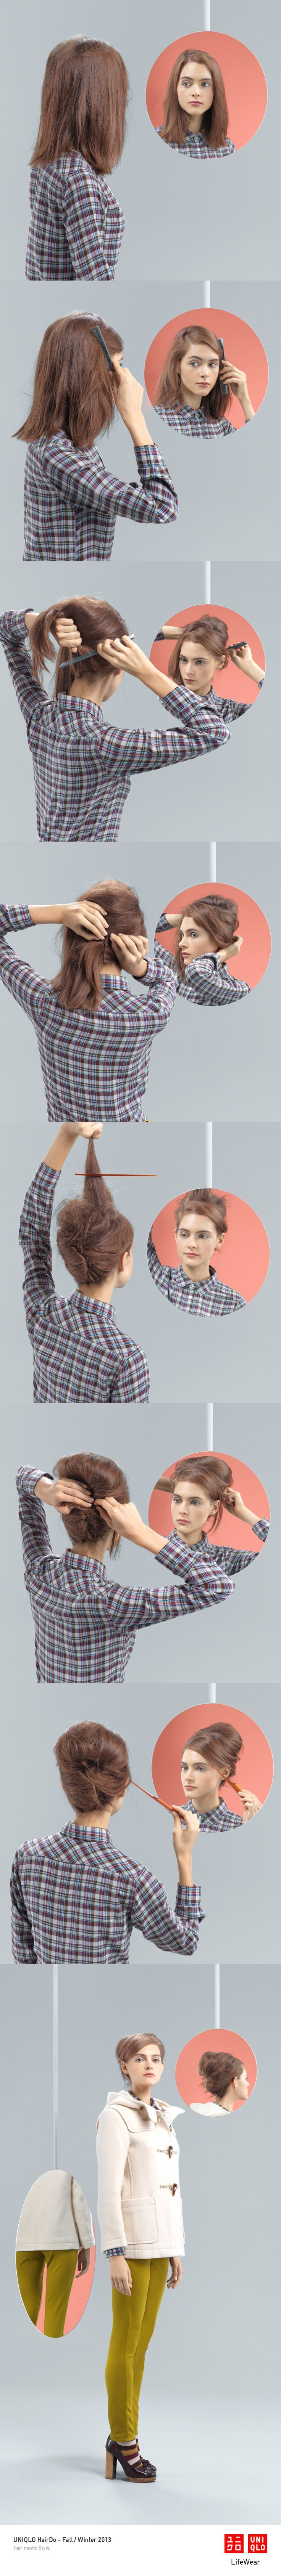 The Side Beehive - A cotton flannel shirt works well with this modern take on a classic hair style.